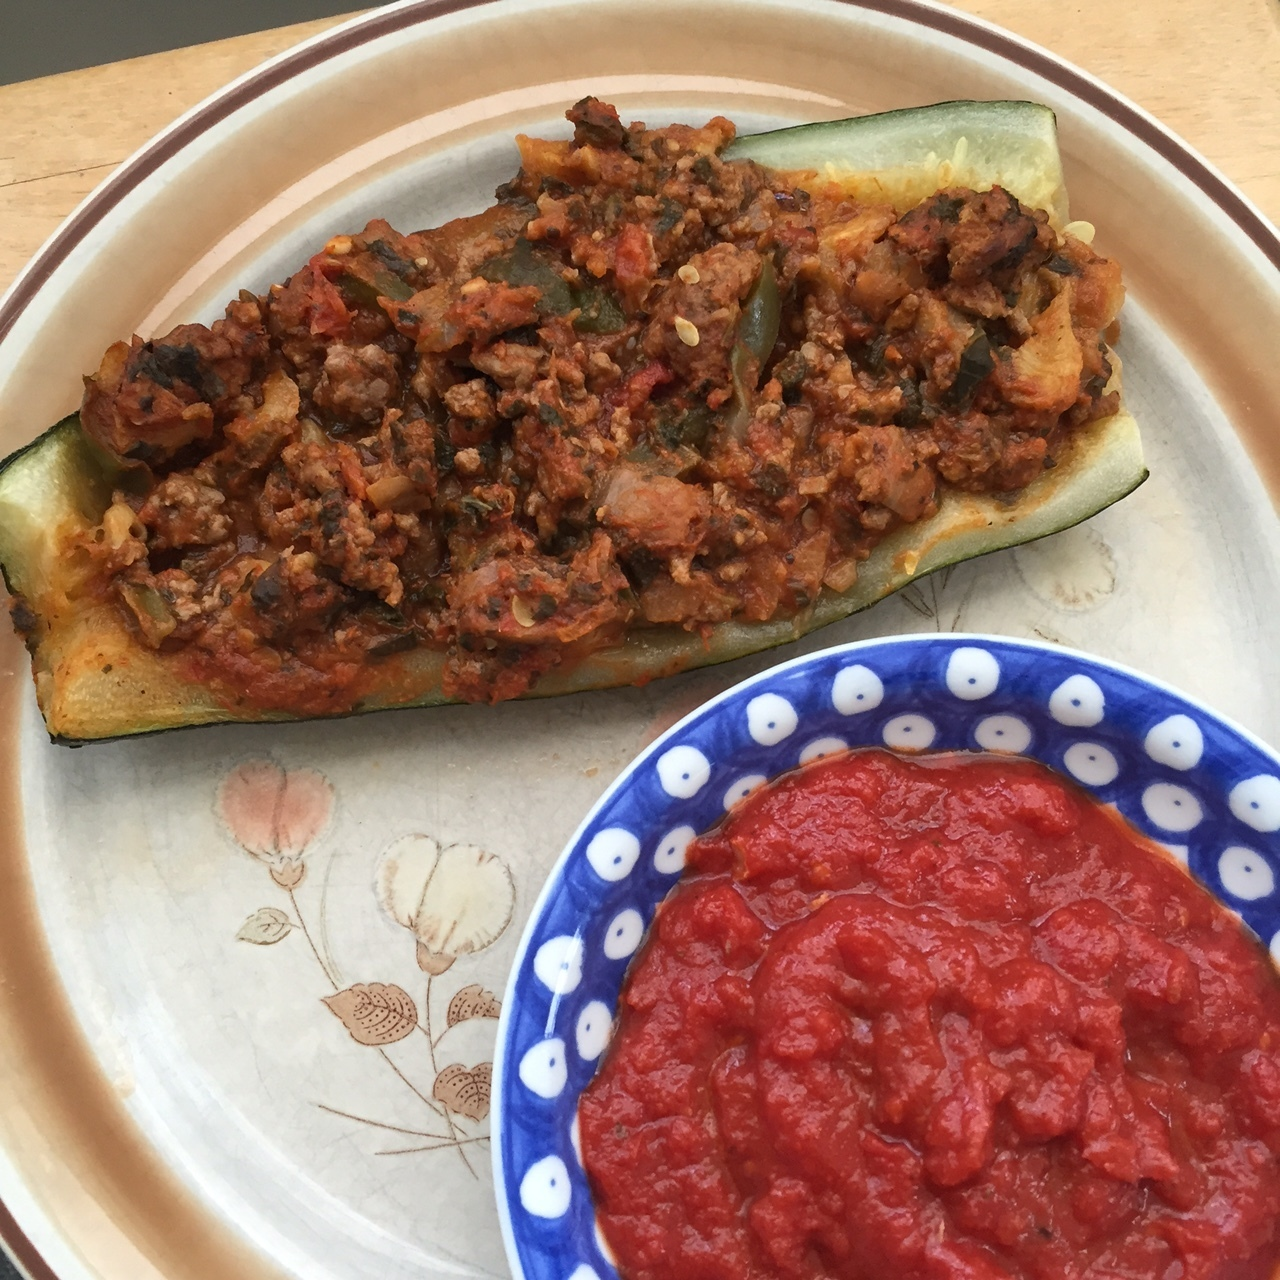 I'm Back! With a Baked Stuffed Zucchini Recipe